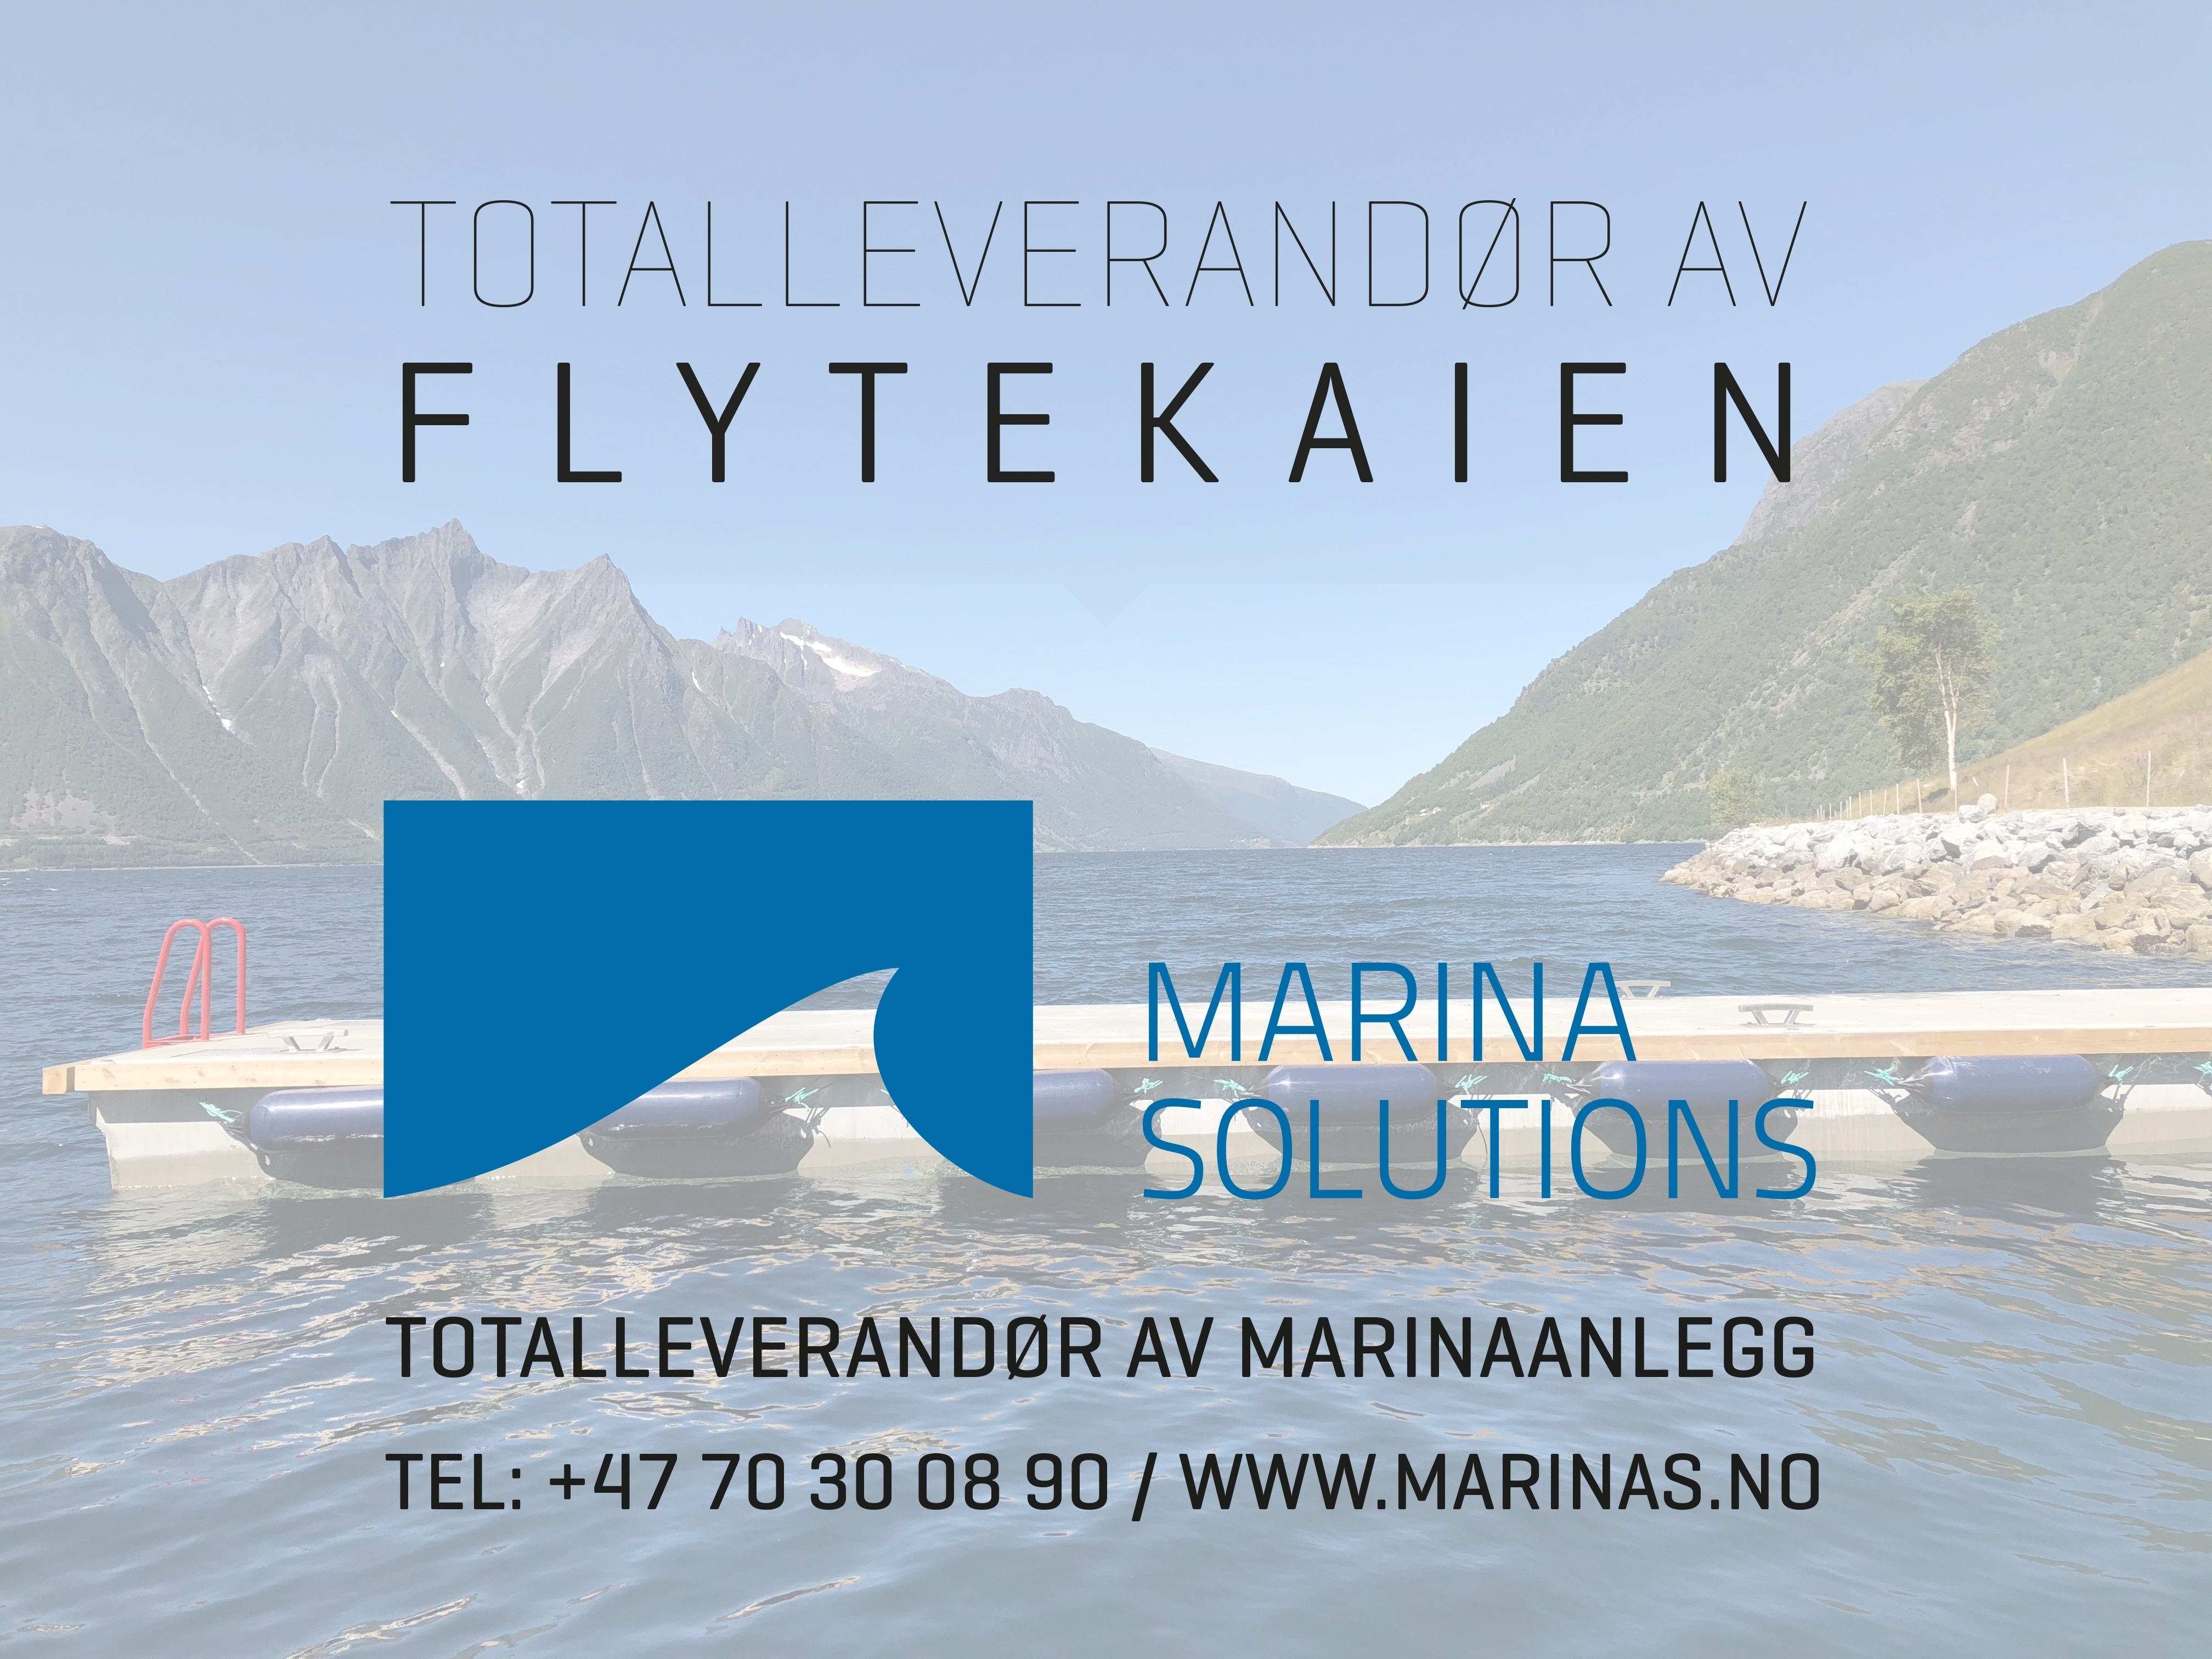 https://www.marinasolutions.no/uploads/totalleverandør.jpg